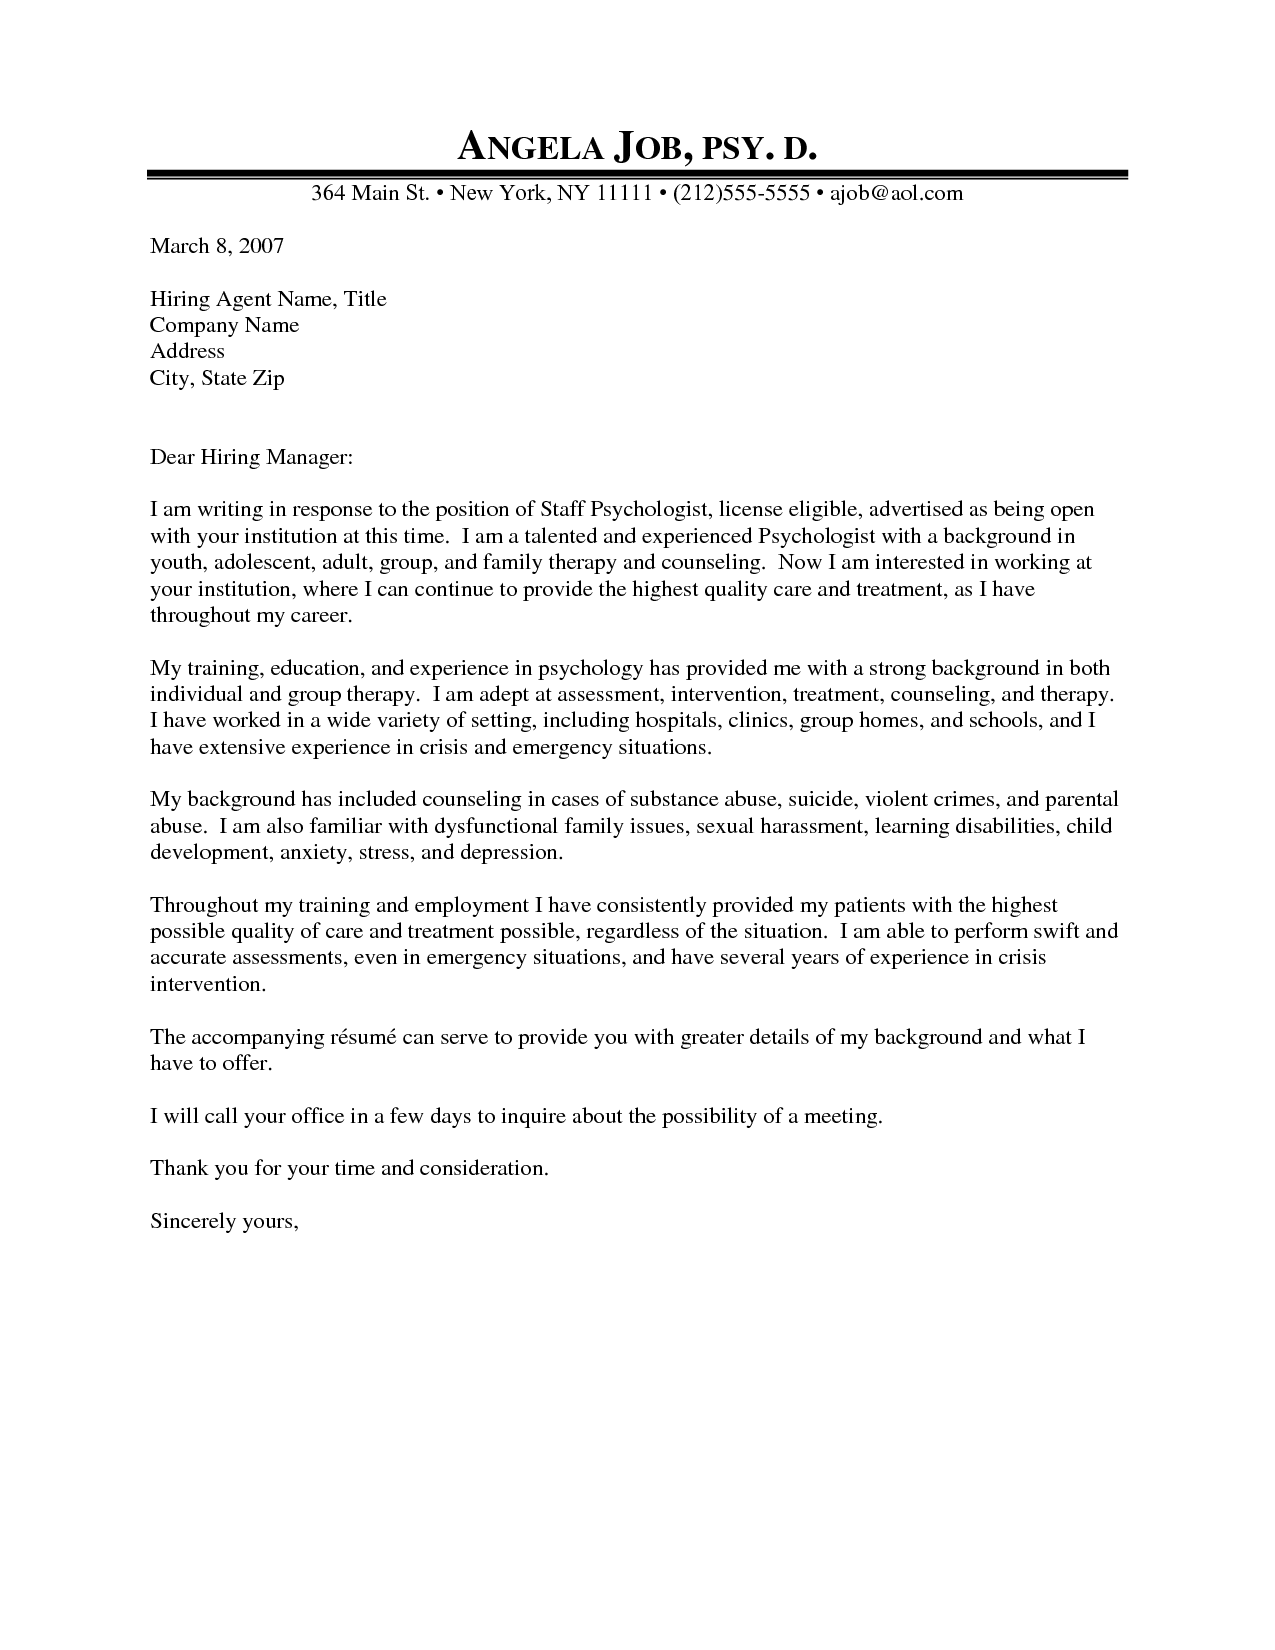 school counselor cover letter samples